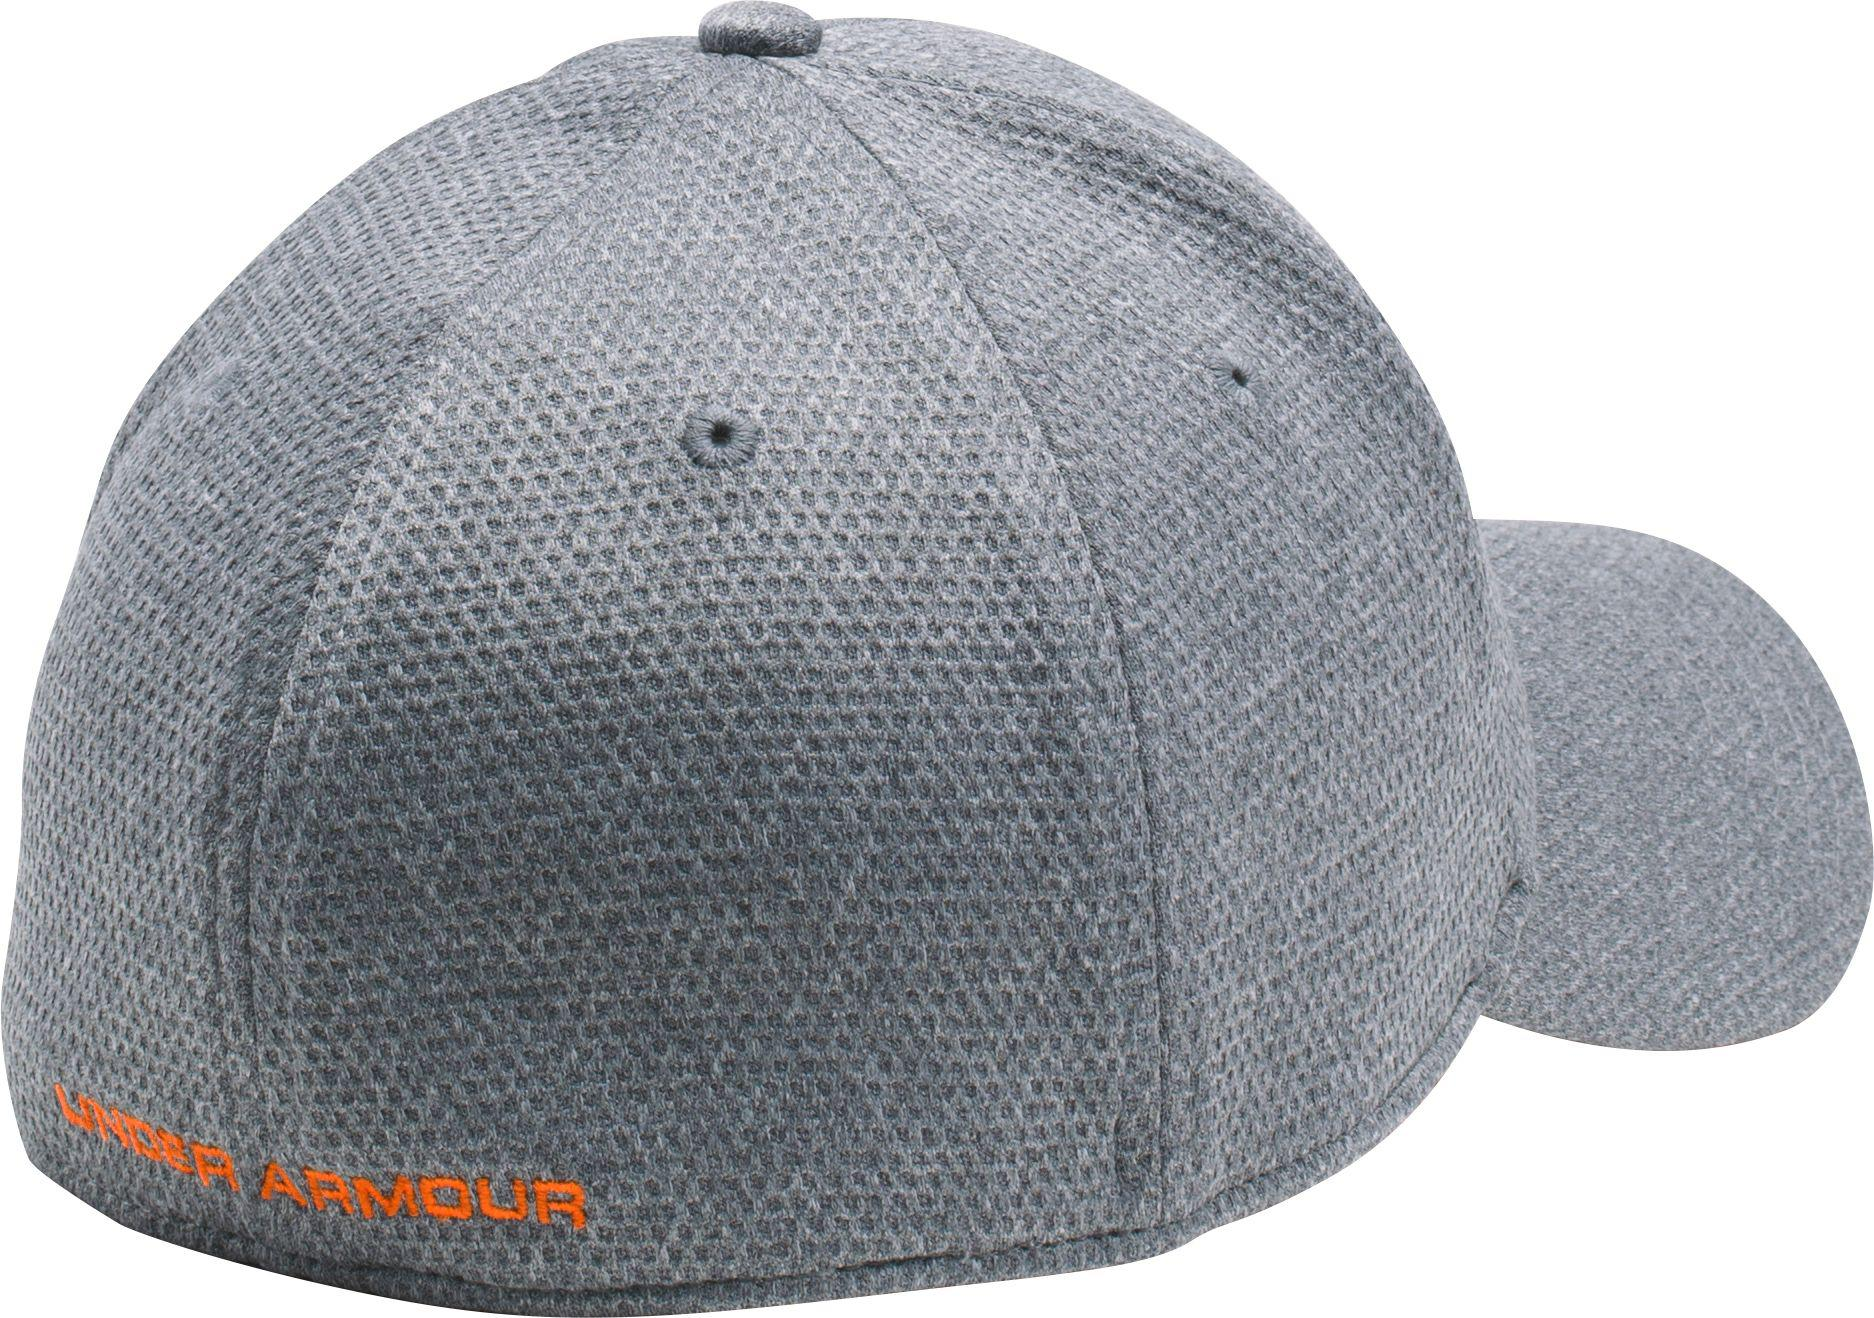 e6393ccbcd8 Lyst - Under Armour Heathered Blitzing Running Hat in Gray for Men